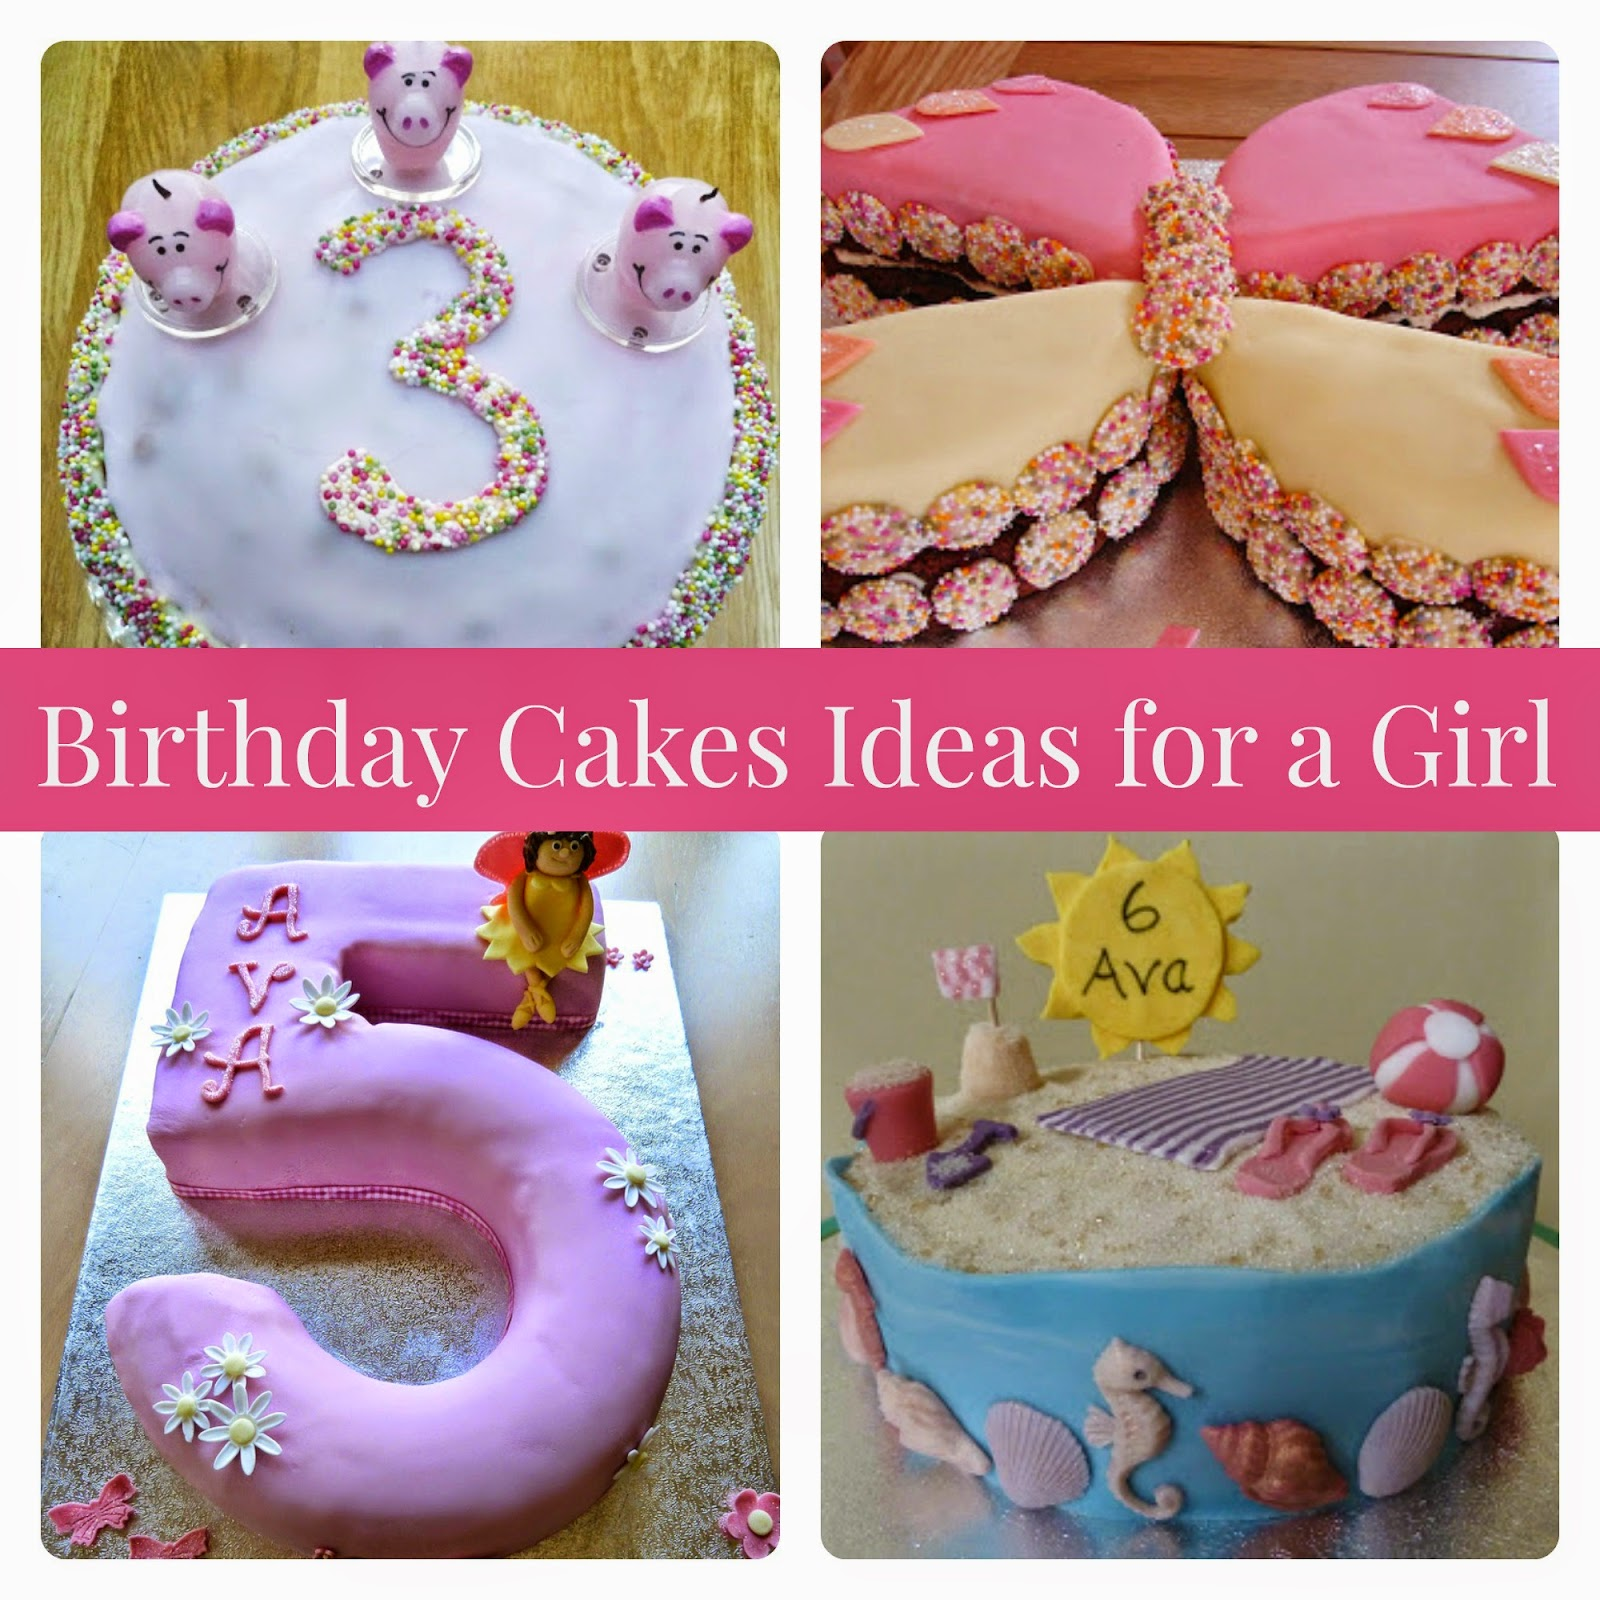 Outstanding Looking For Birthday Cake Inspiration Garden Tea Cakes And Me Funny Birthday Cards Online Barepcheapnameinfo